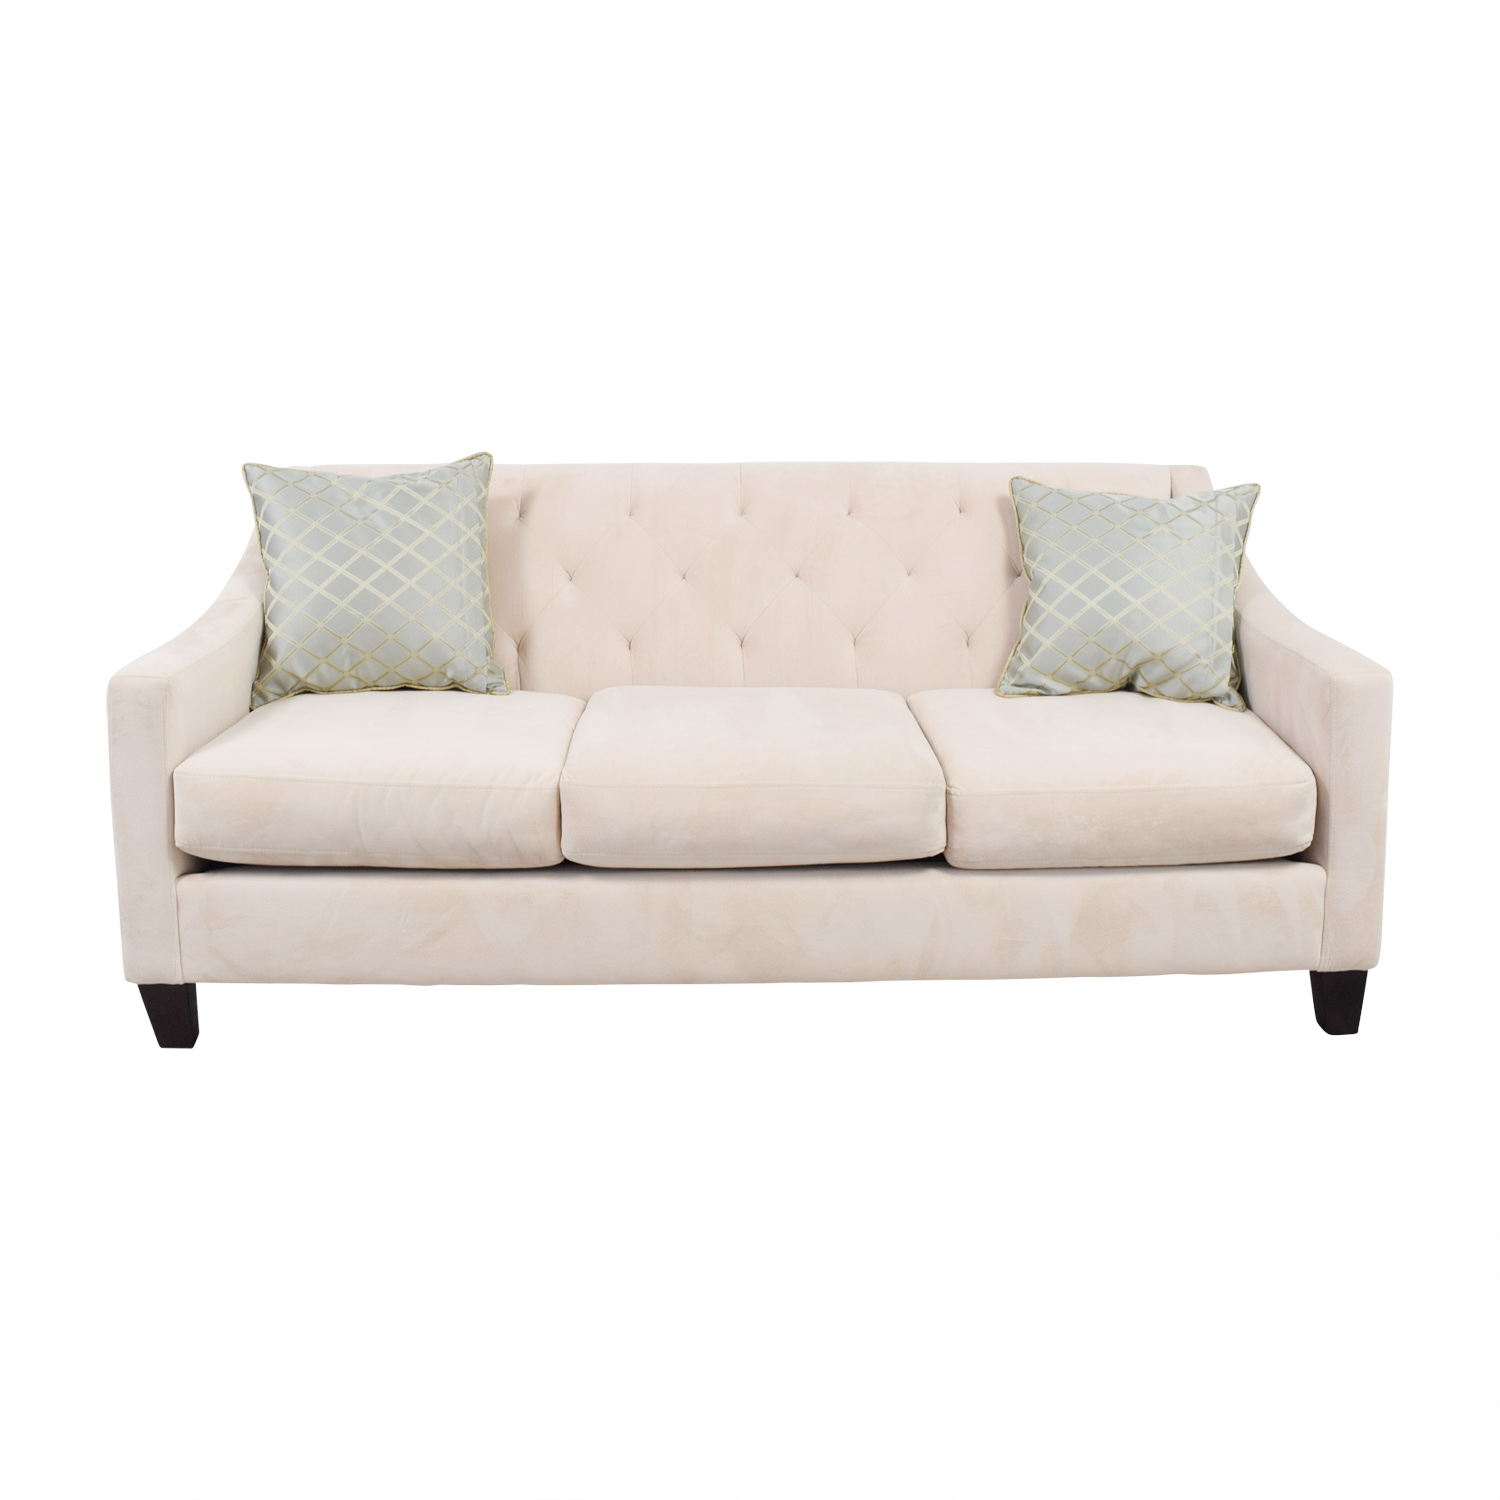 shop Max Home Beige Semi-Tufted Three-Cushion Couch Max Home